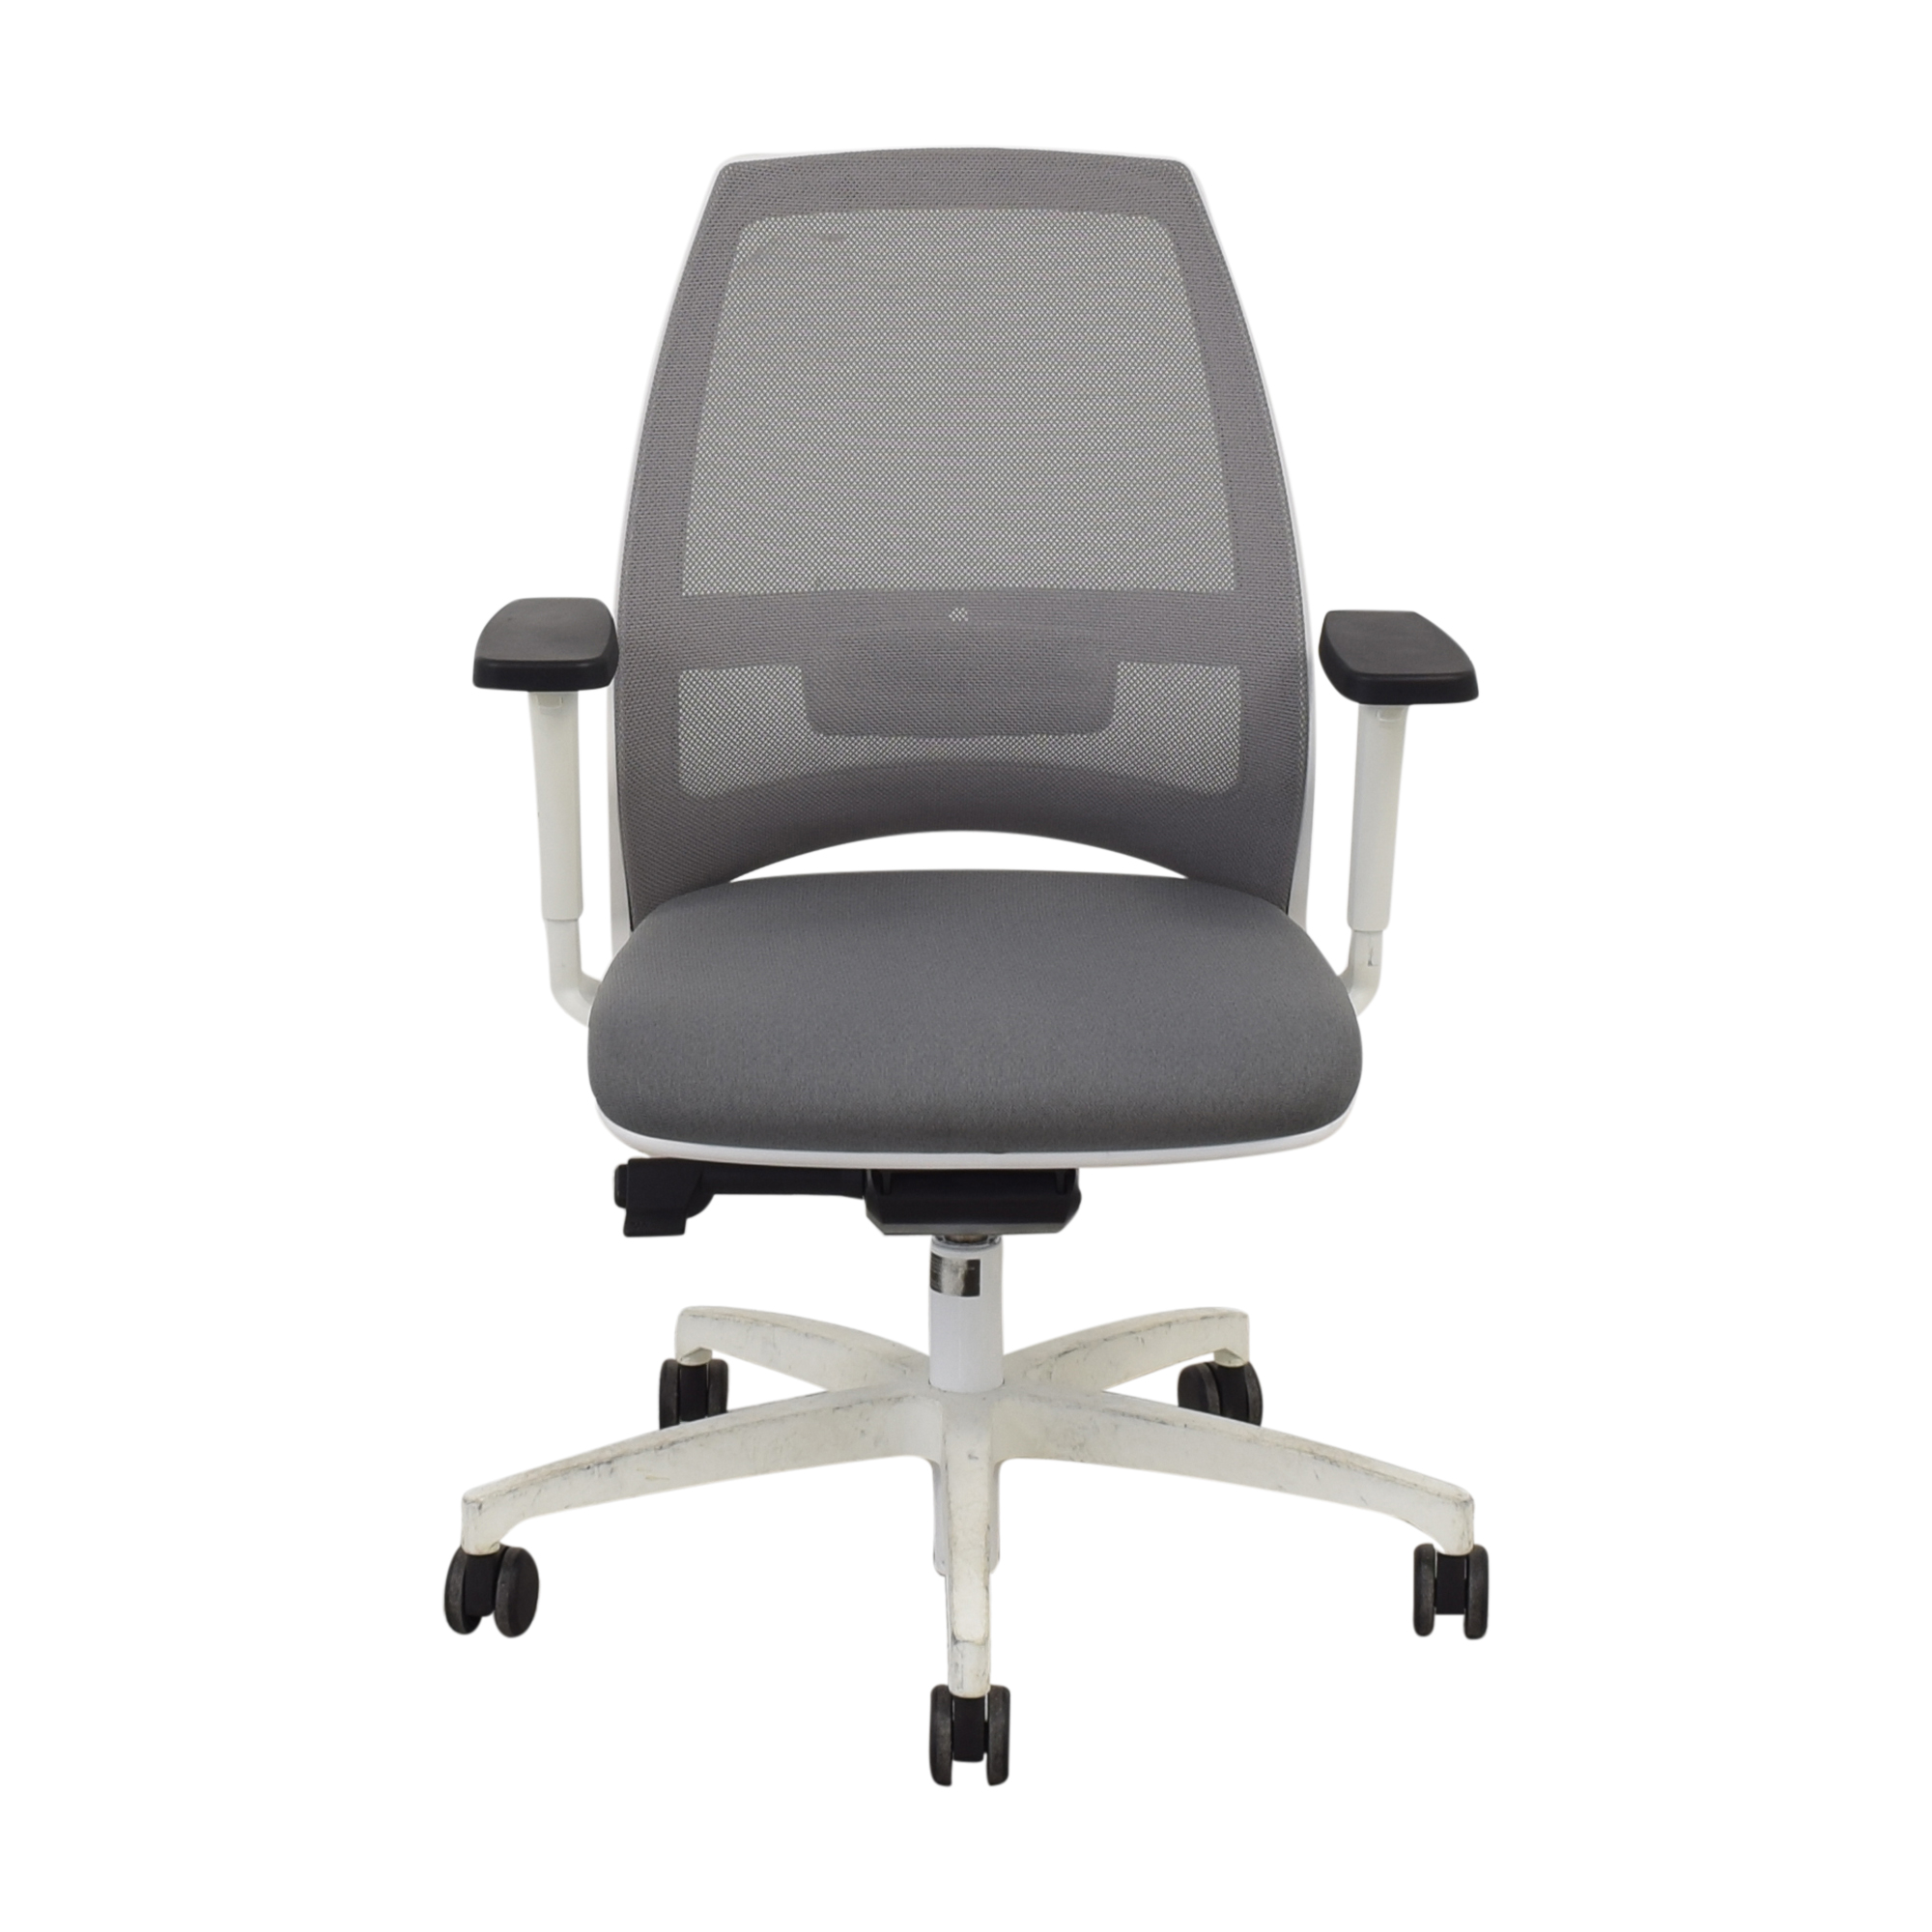 Koleksiyon Koleksiyon Clarus Office Chair nj